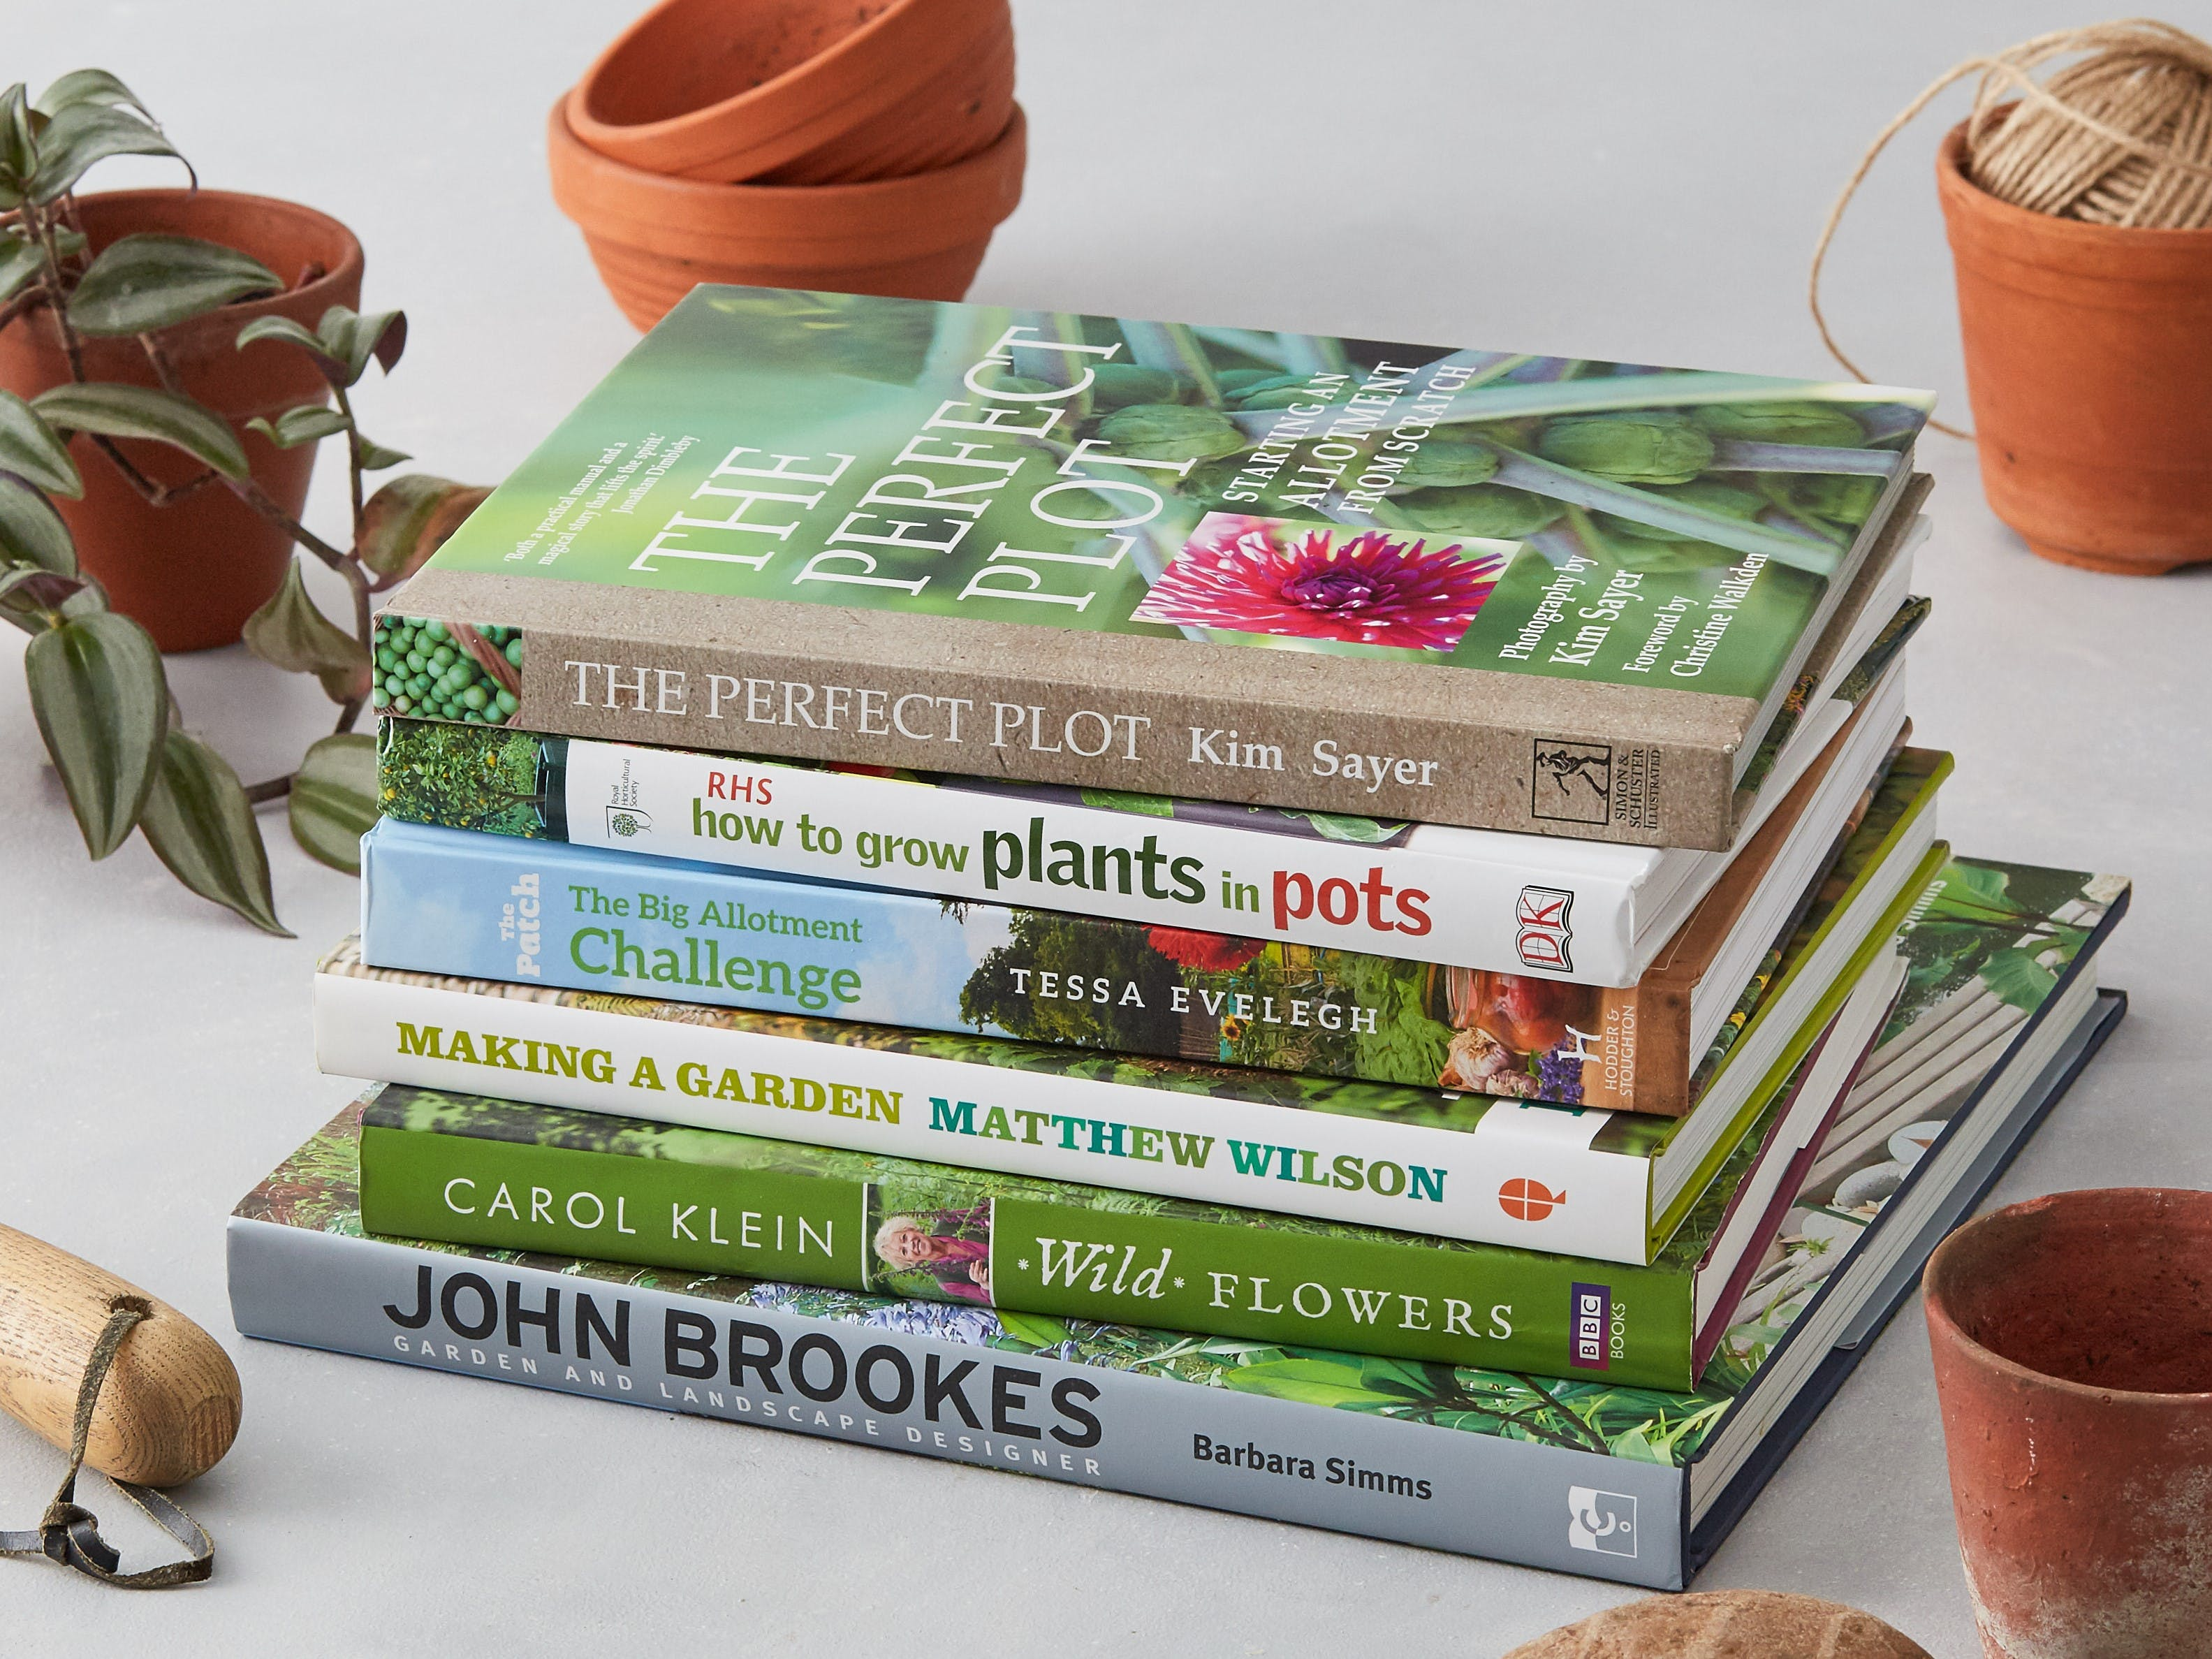 The Willoughby Gardening Book Club